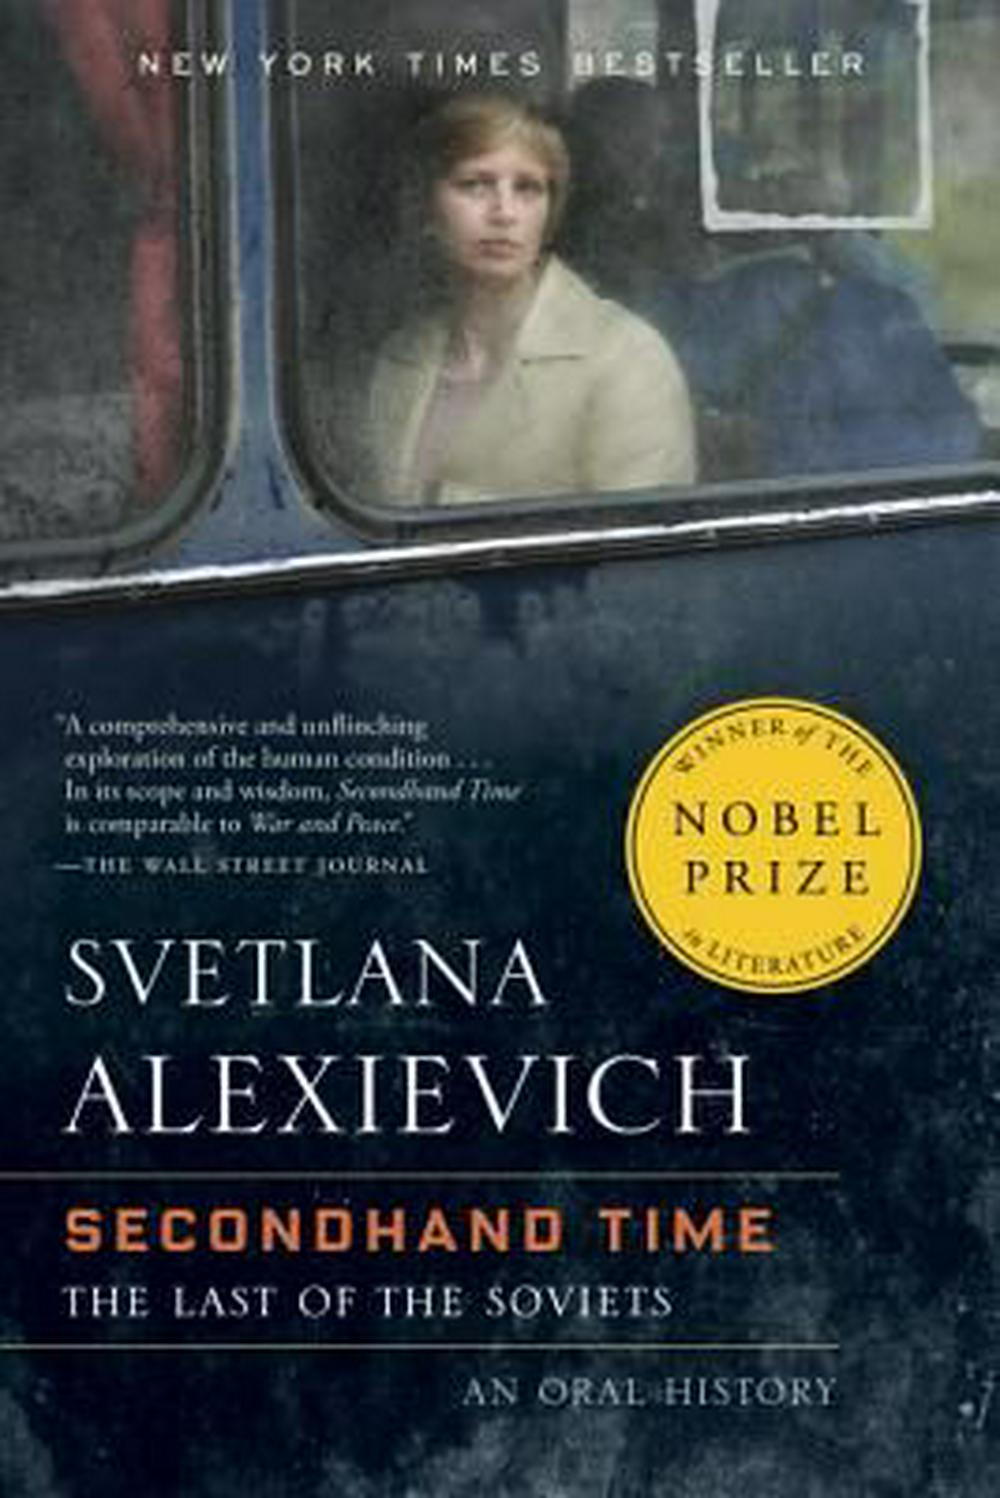 Secondhand Time: The Last of the Soviets by Svetlana Alexievich, ISBN: 9780399588822